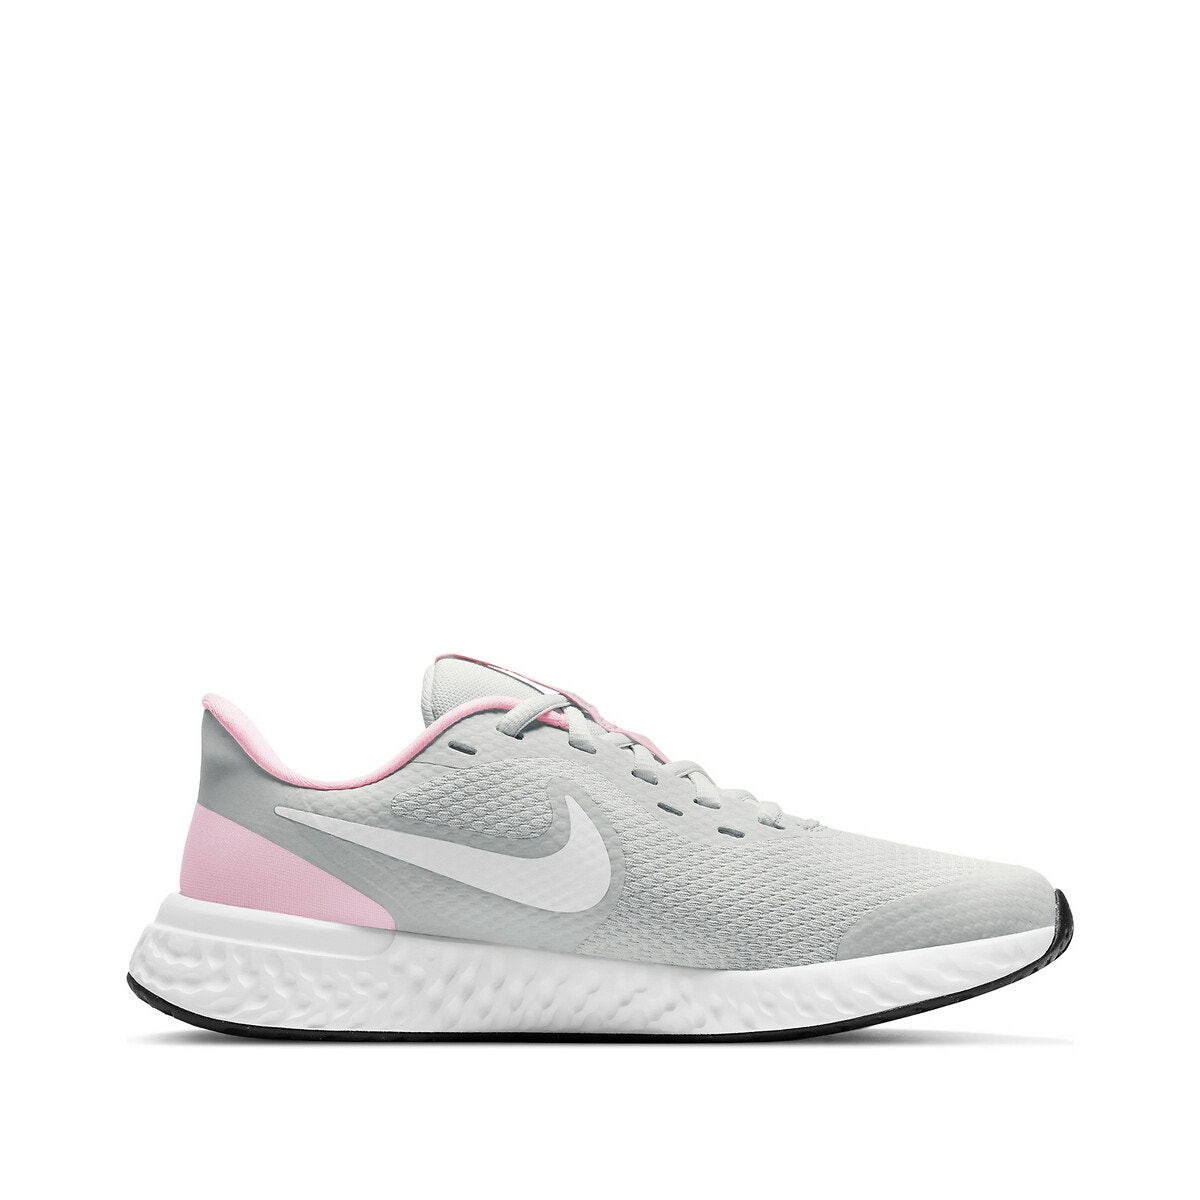 Chaussures Nike fille | La Redoute